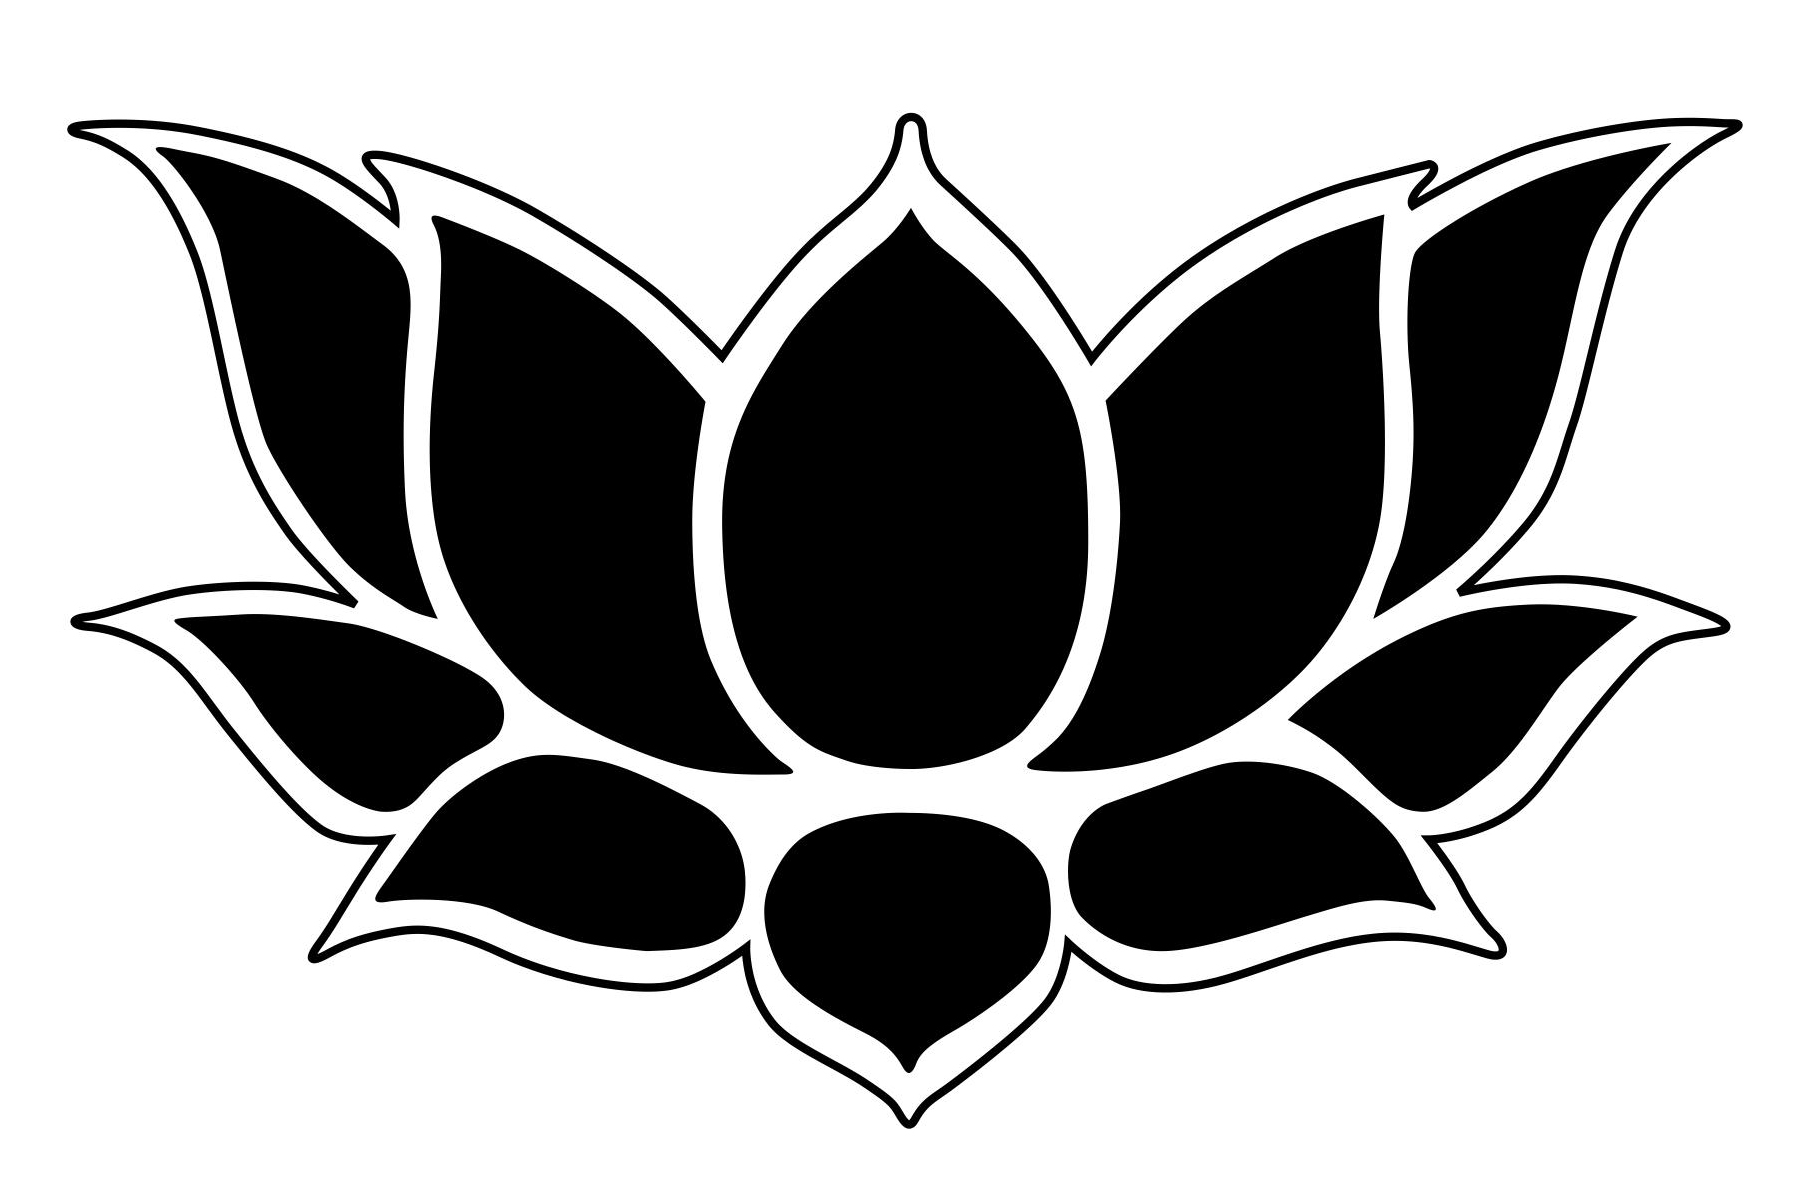 Free Flower Stencil Outline, Download Free Clip Art, Free.